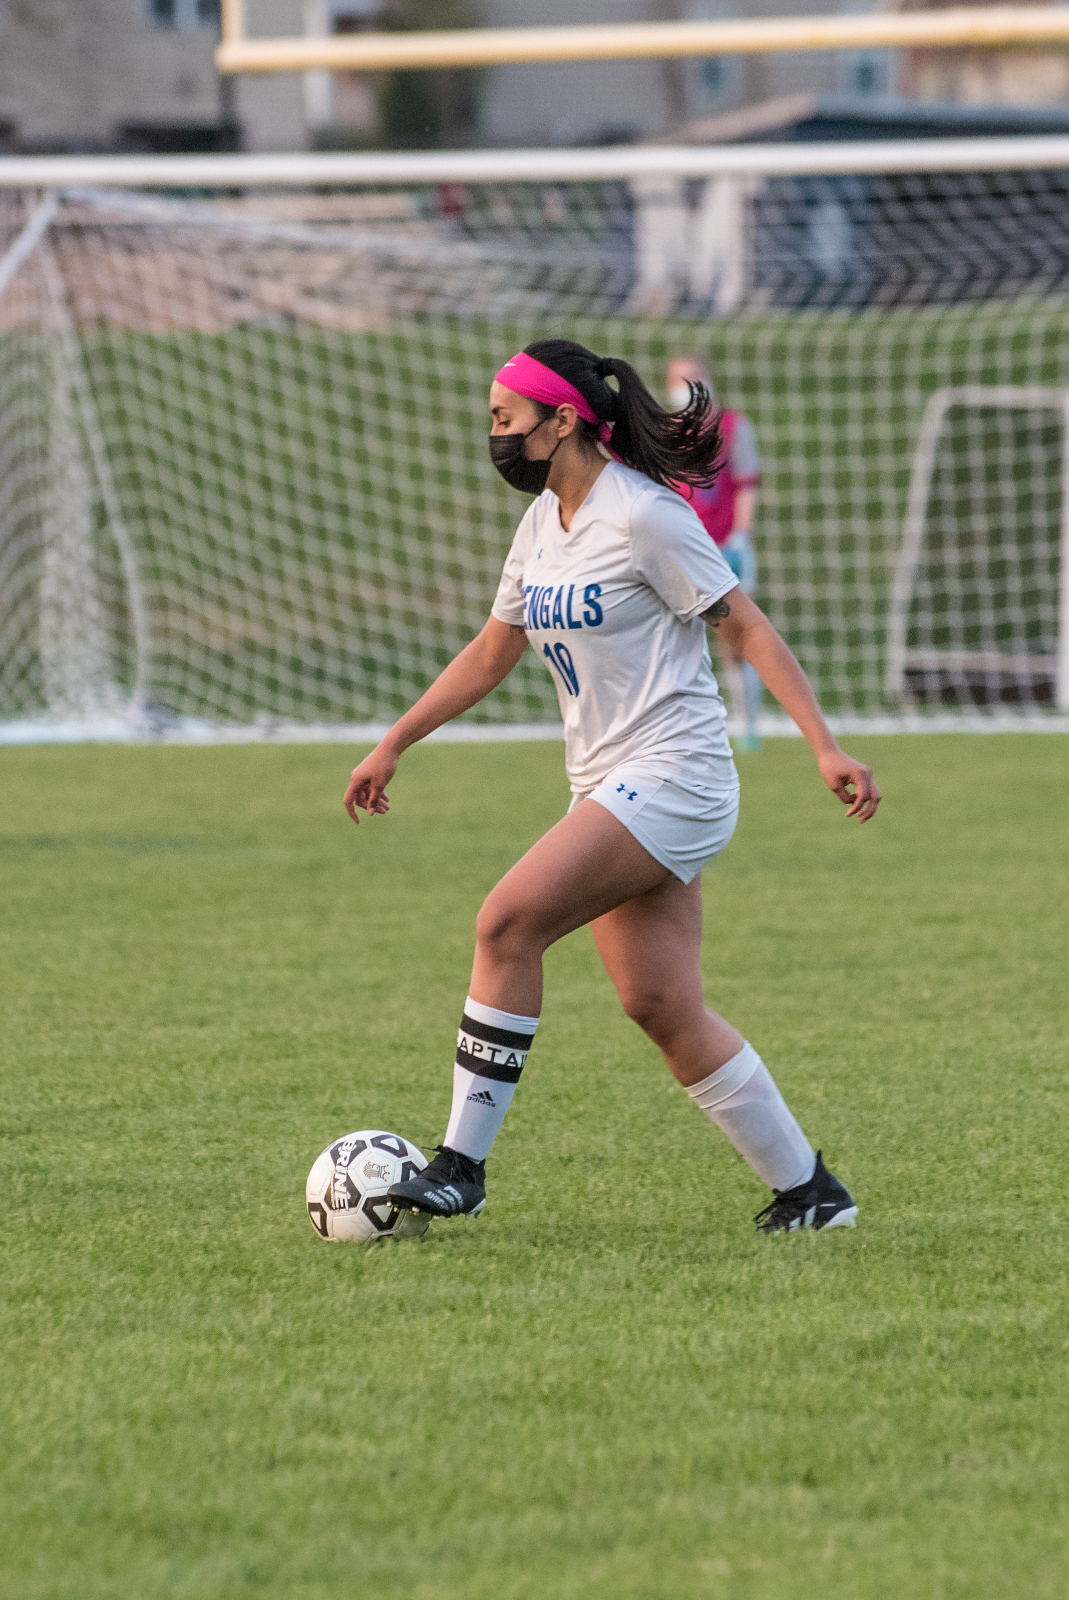 Varsity Girls Soccer Photos – 4/7/21 at Magruder